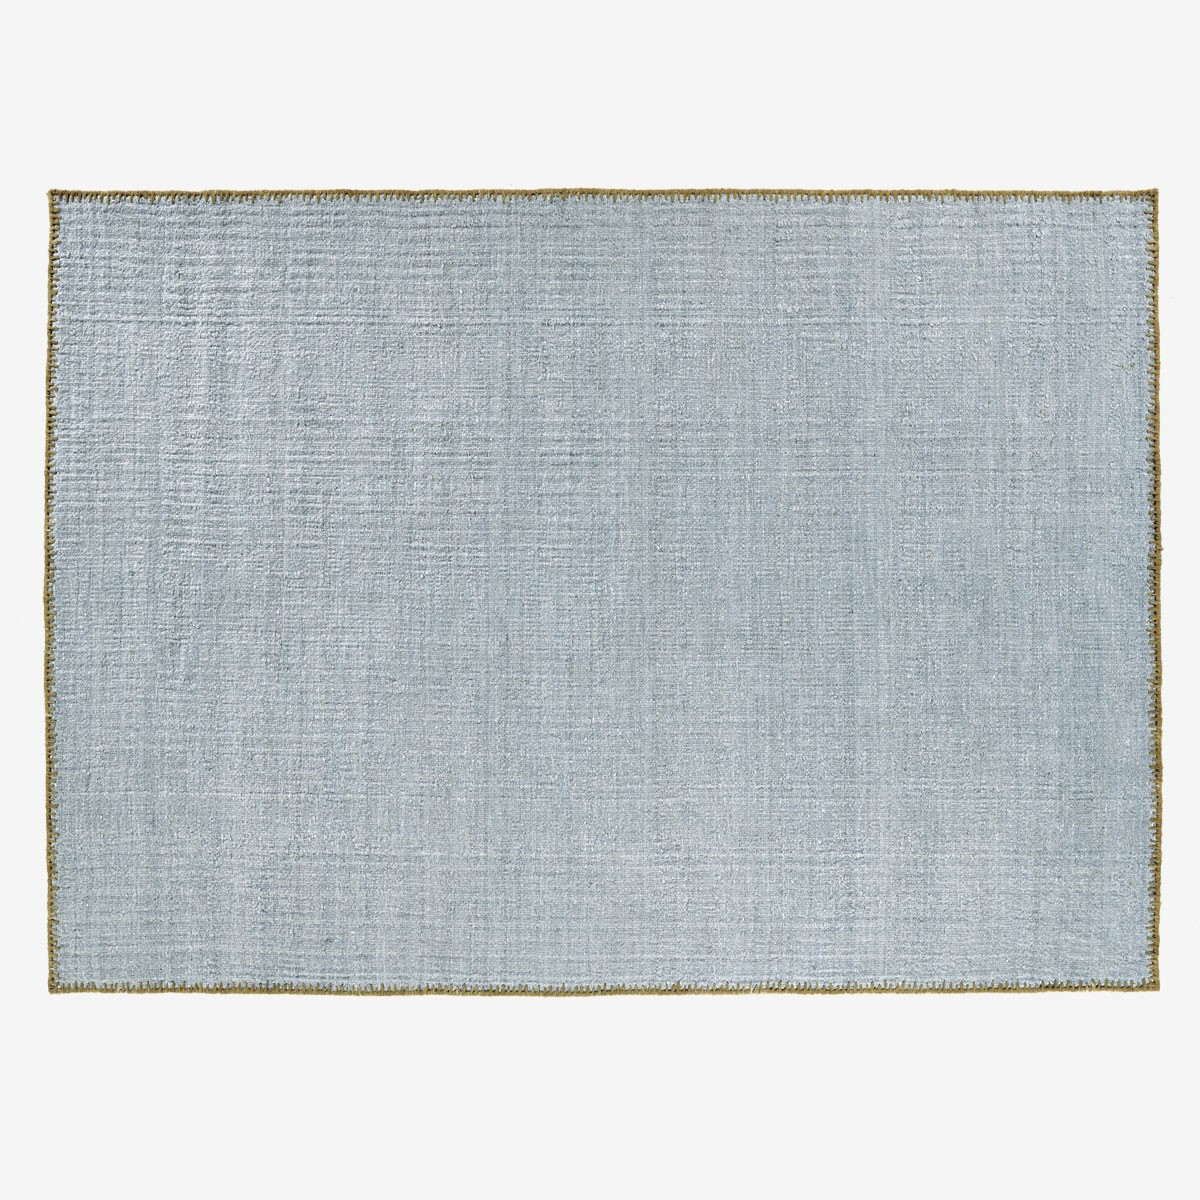 Image shows Atacama Rug in Stone Blue - 250 x 350 cm